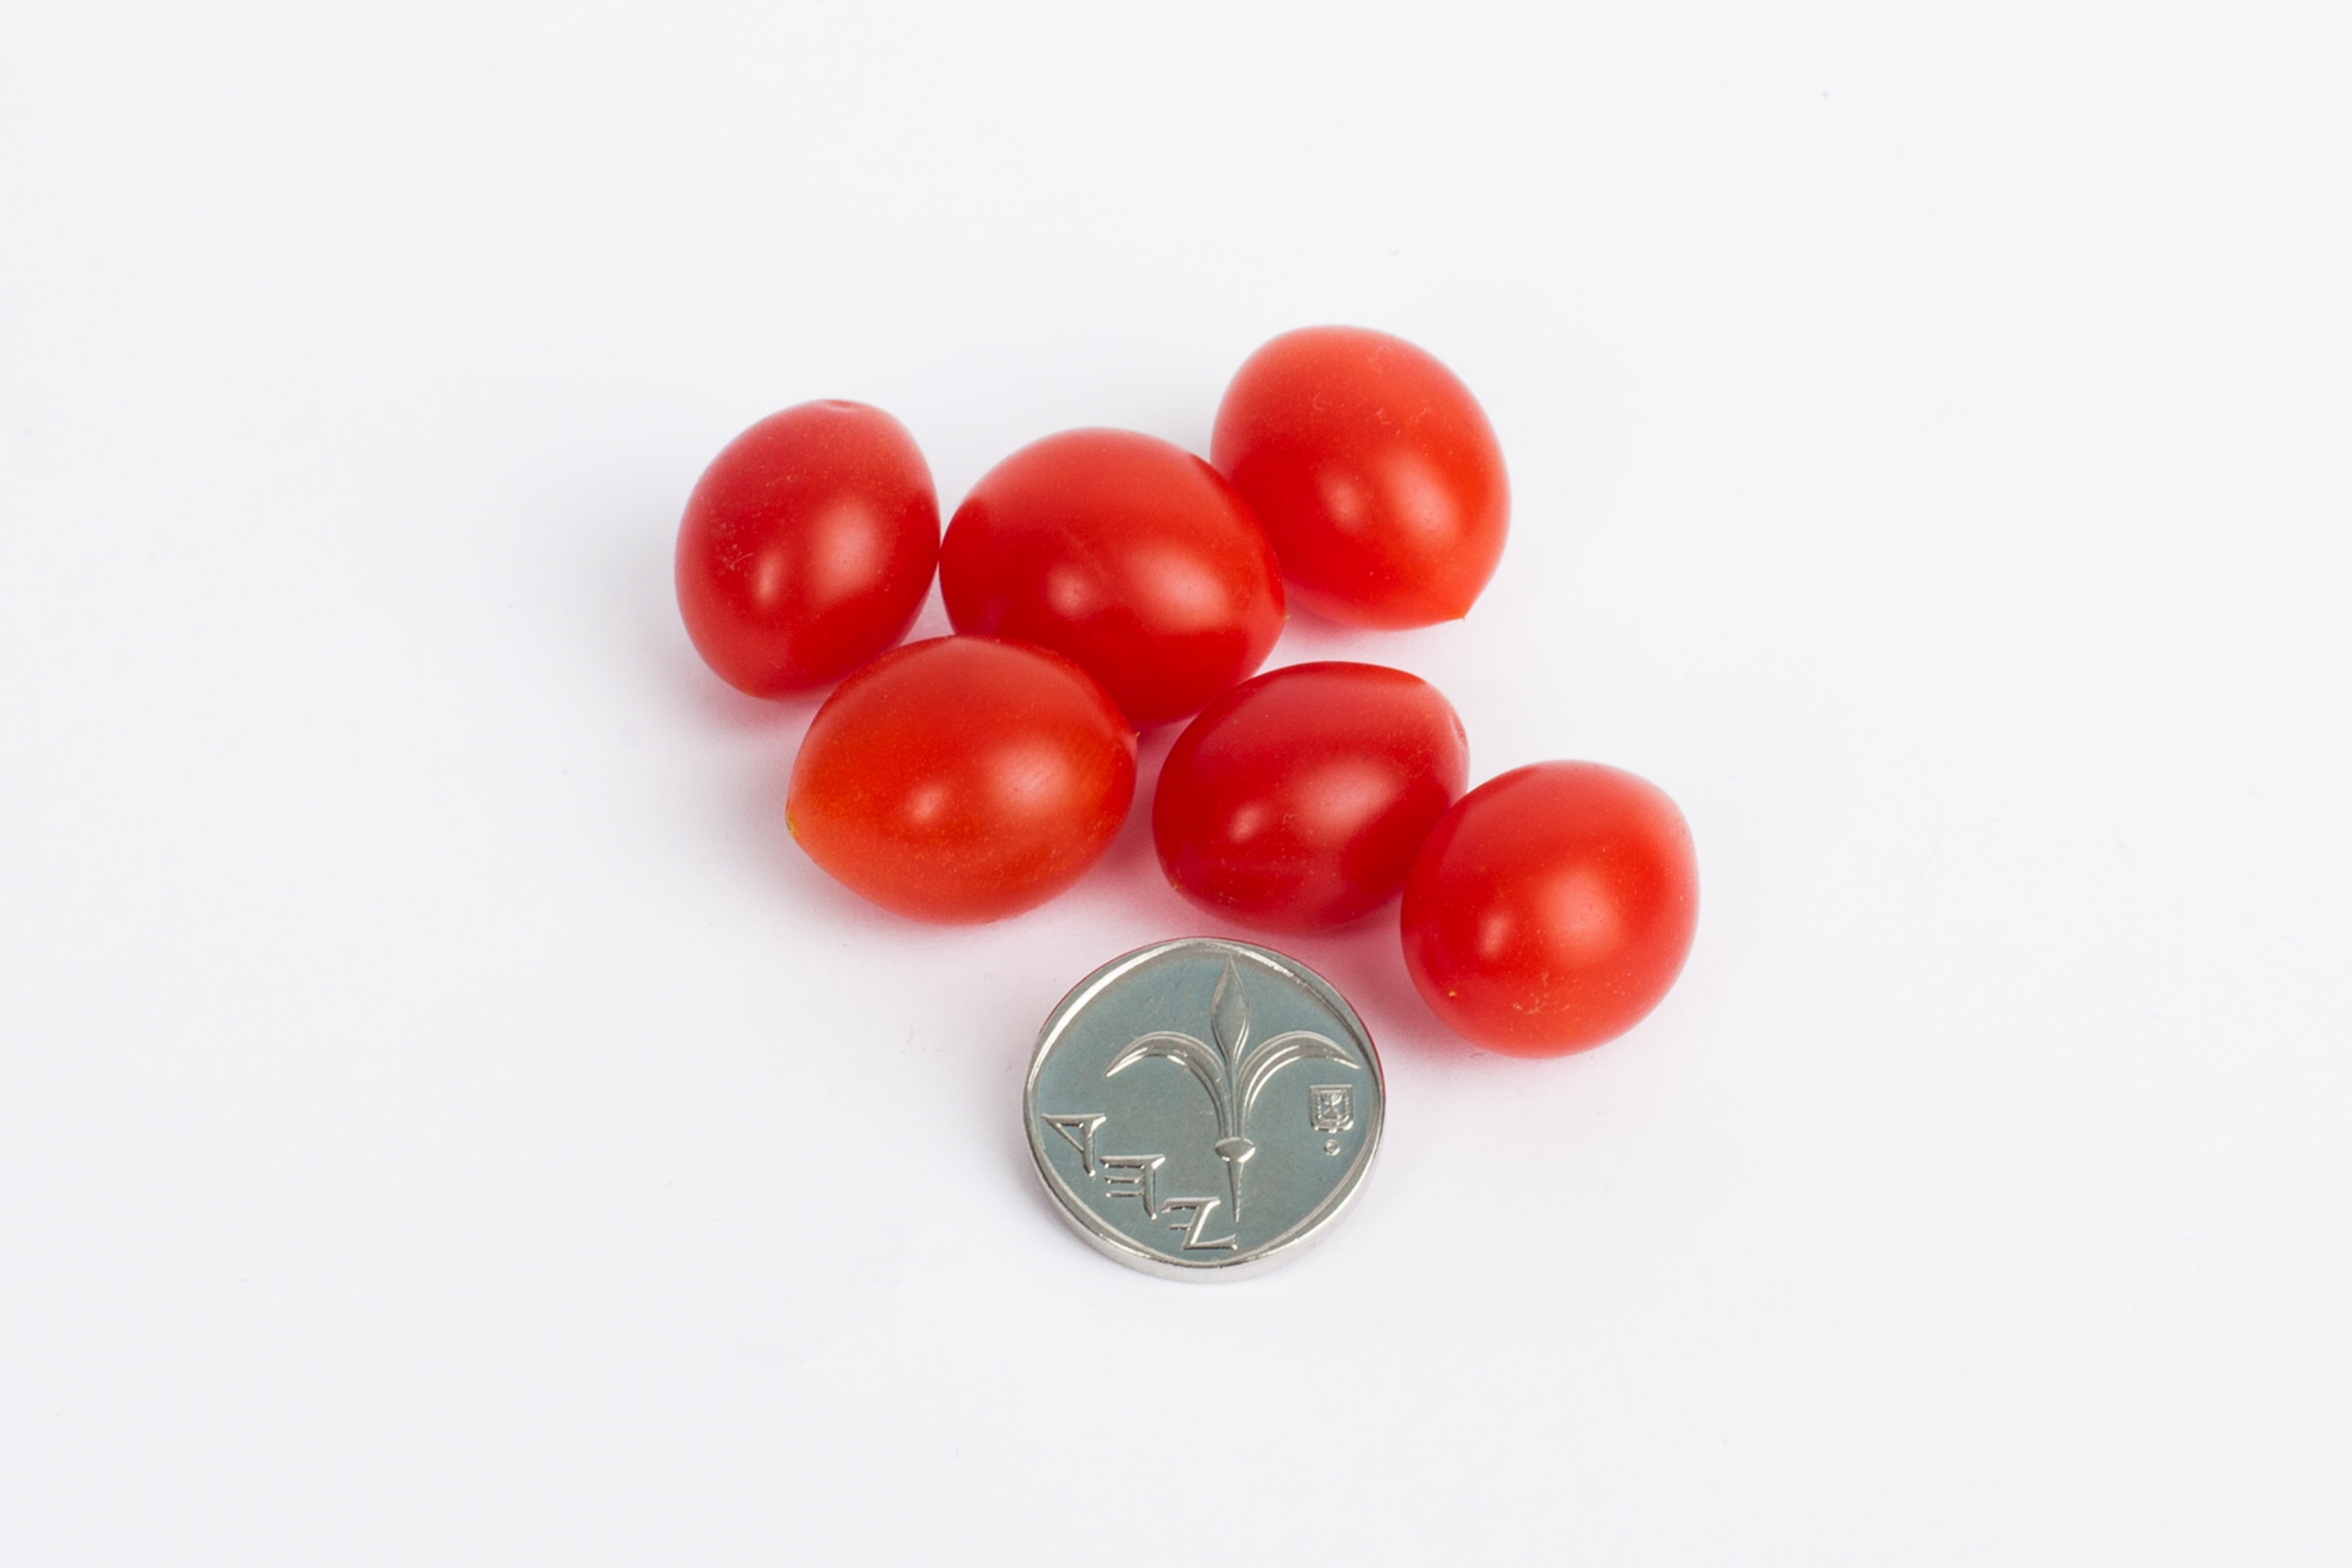 The drop tomato is smaller than a one shekel coin. Courtesy.